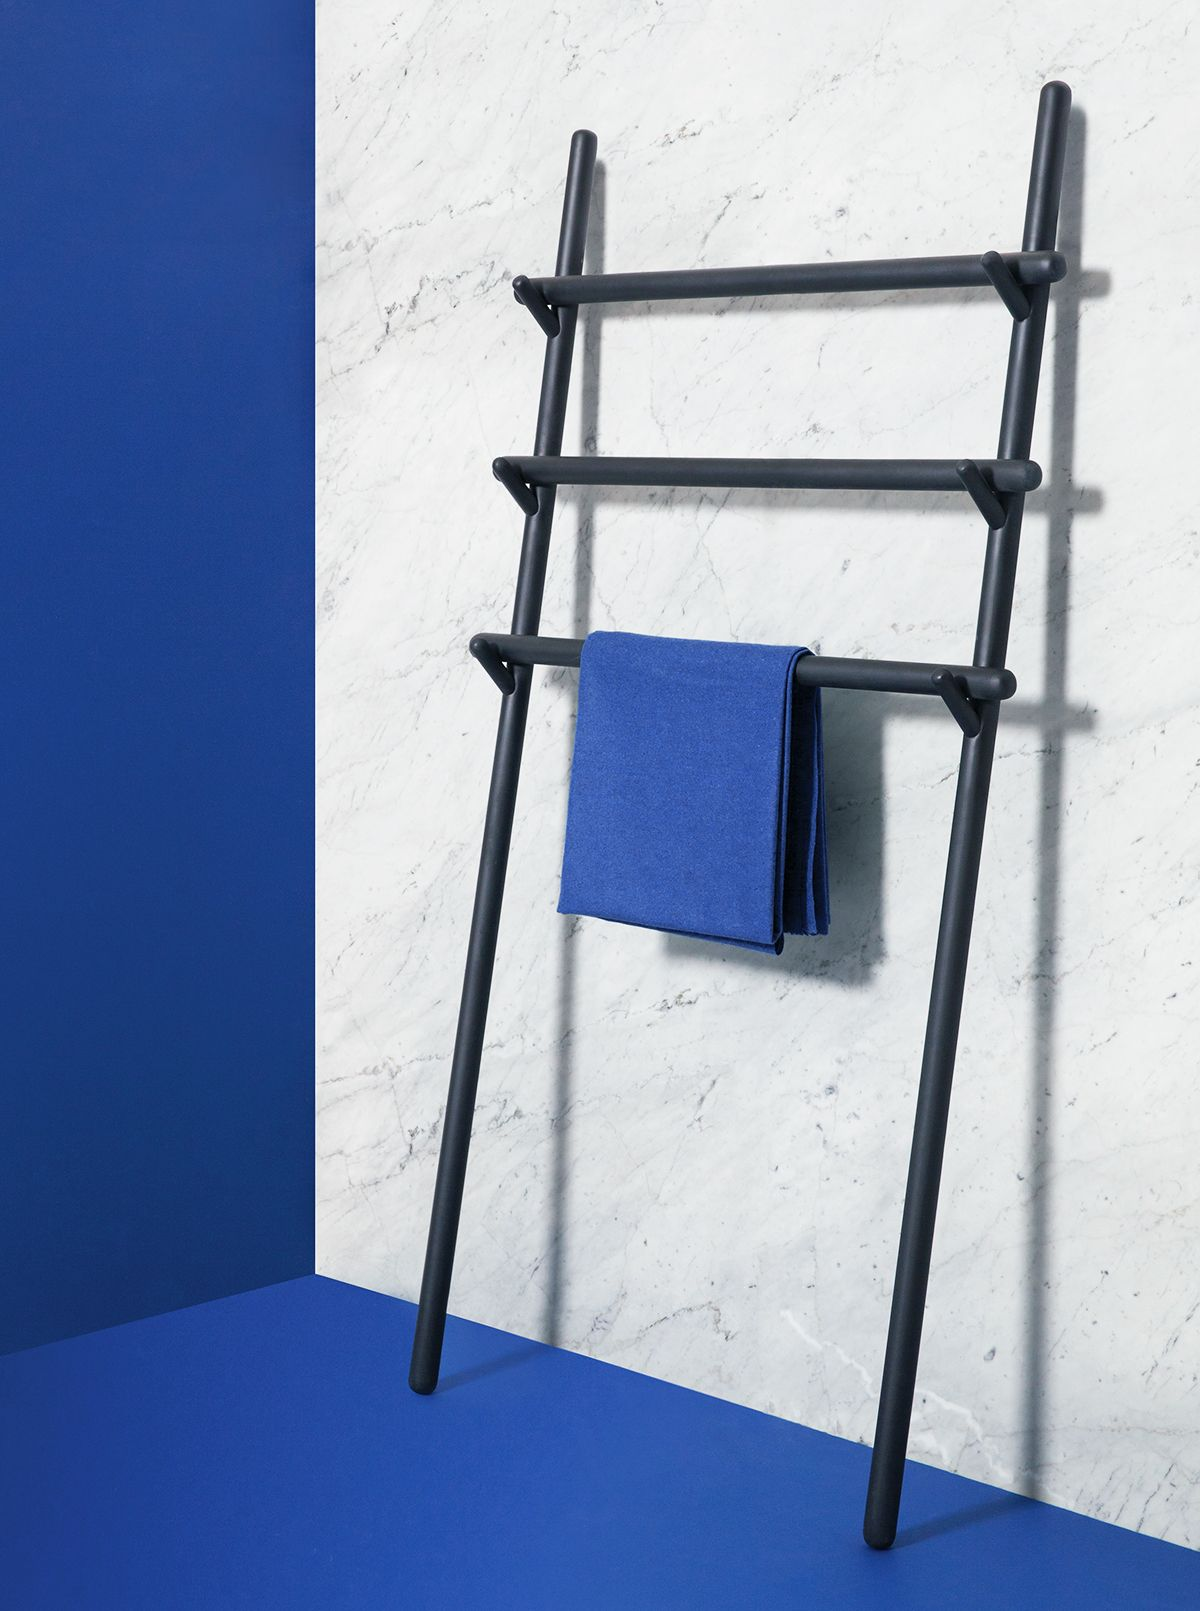 Introducing assembly a capsule furniture and accessories collection